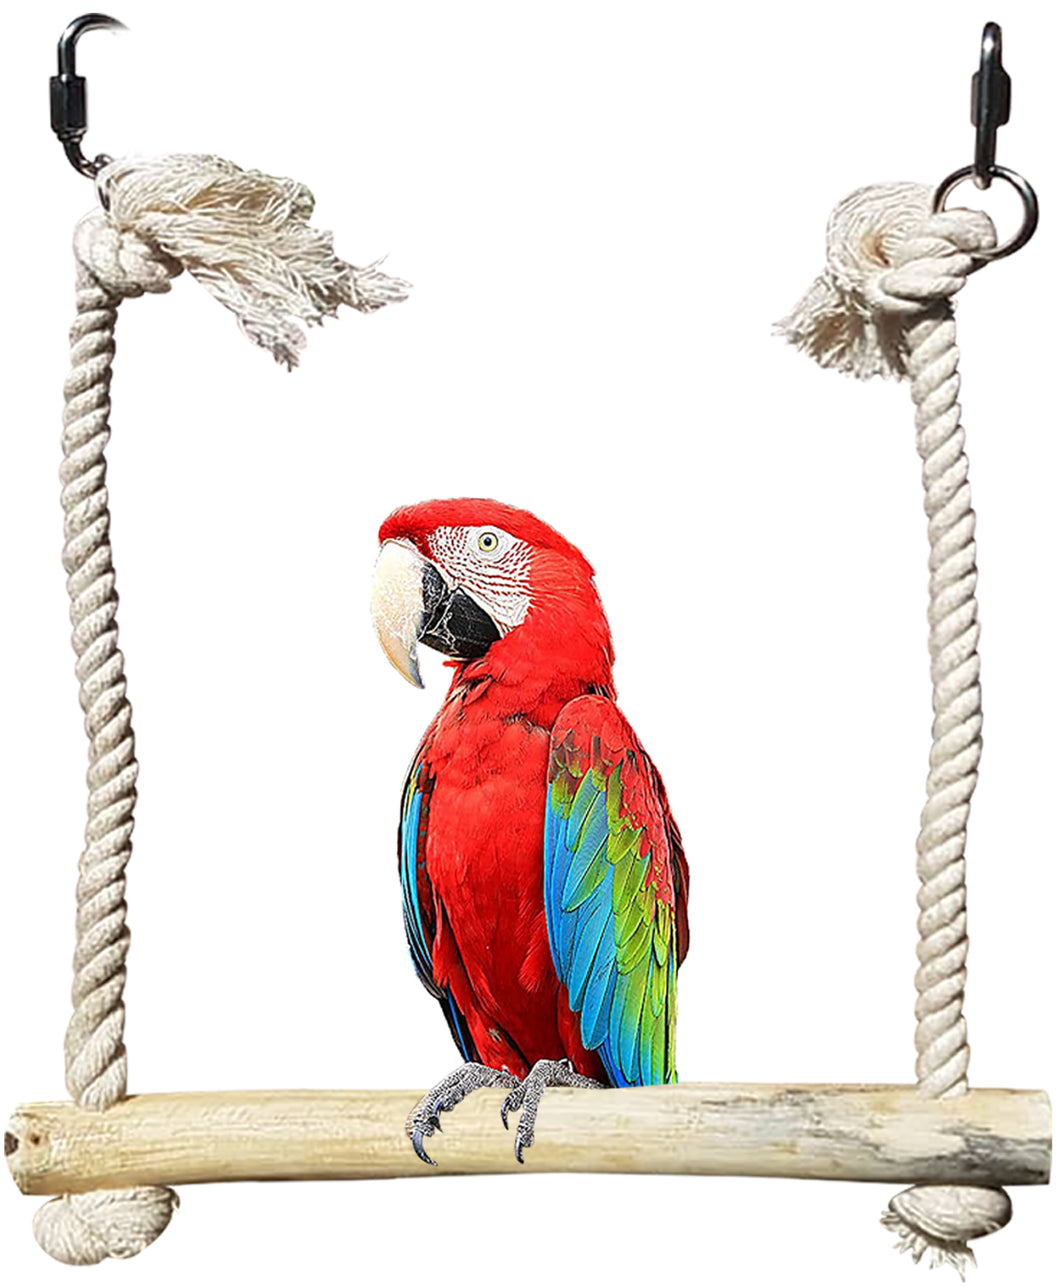 CRAFTMAVEN  HARDWOOD BIRD TOY #3 : HARDWOOD PLAY SWING WITH ROPE